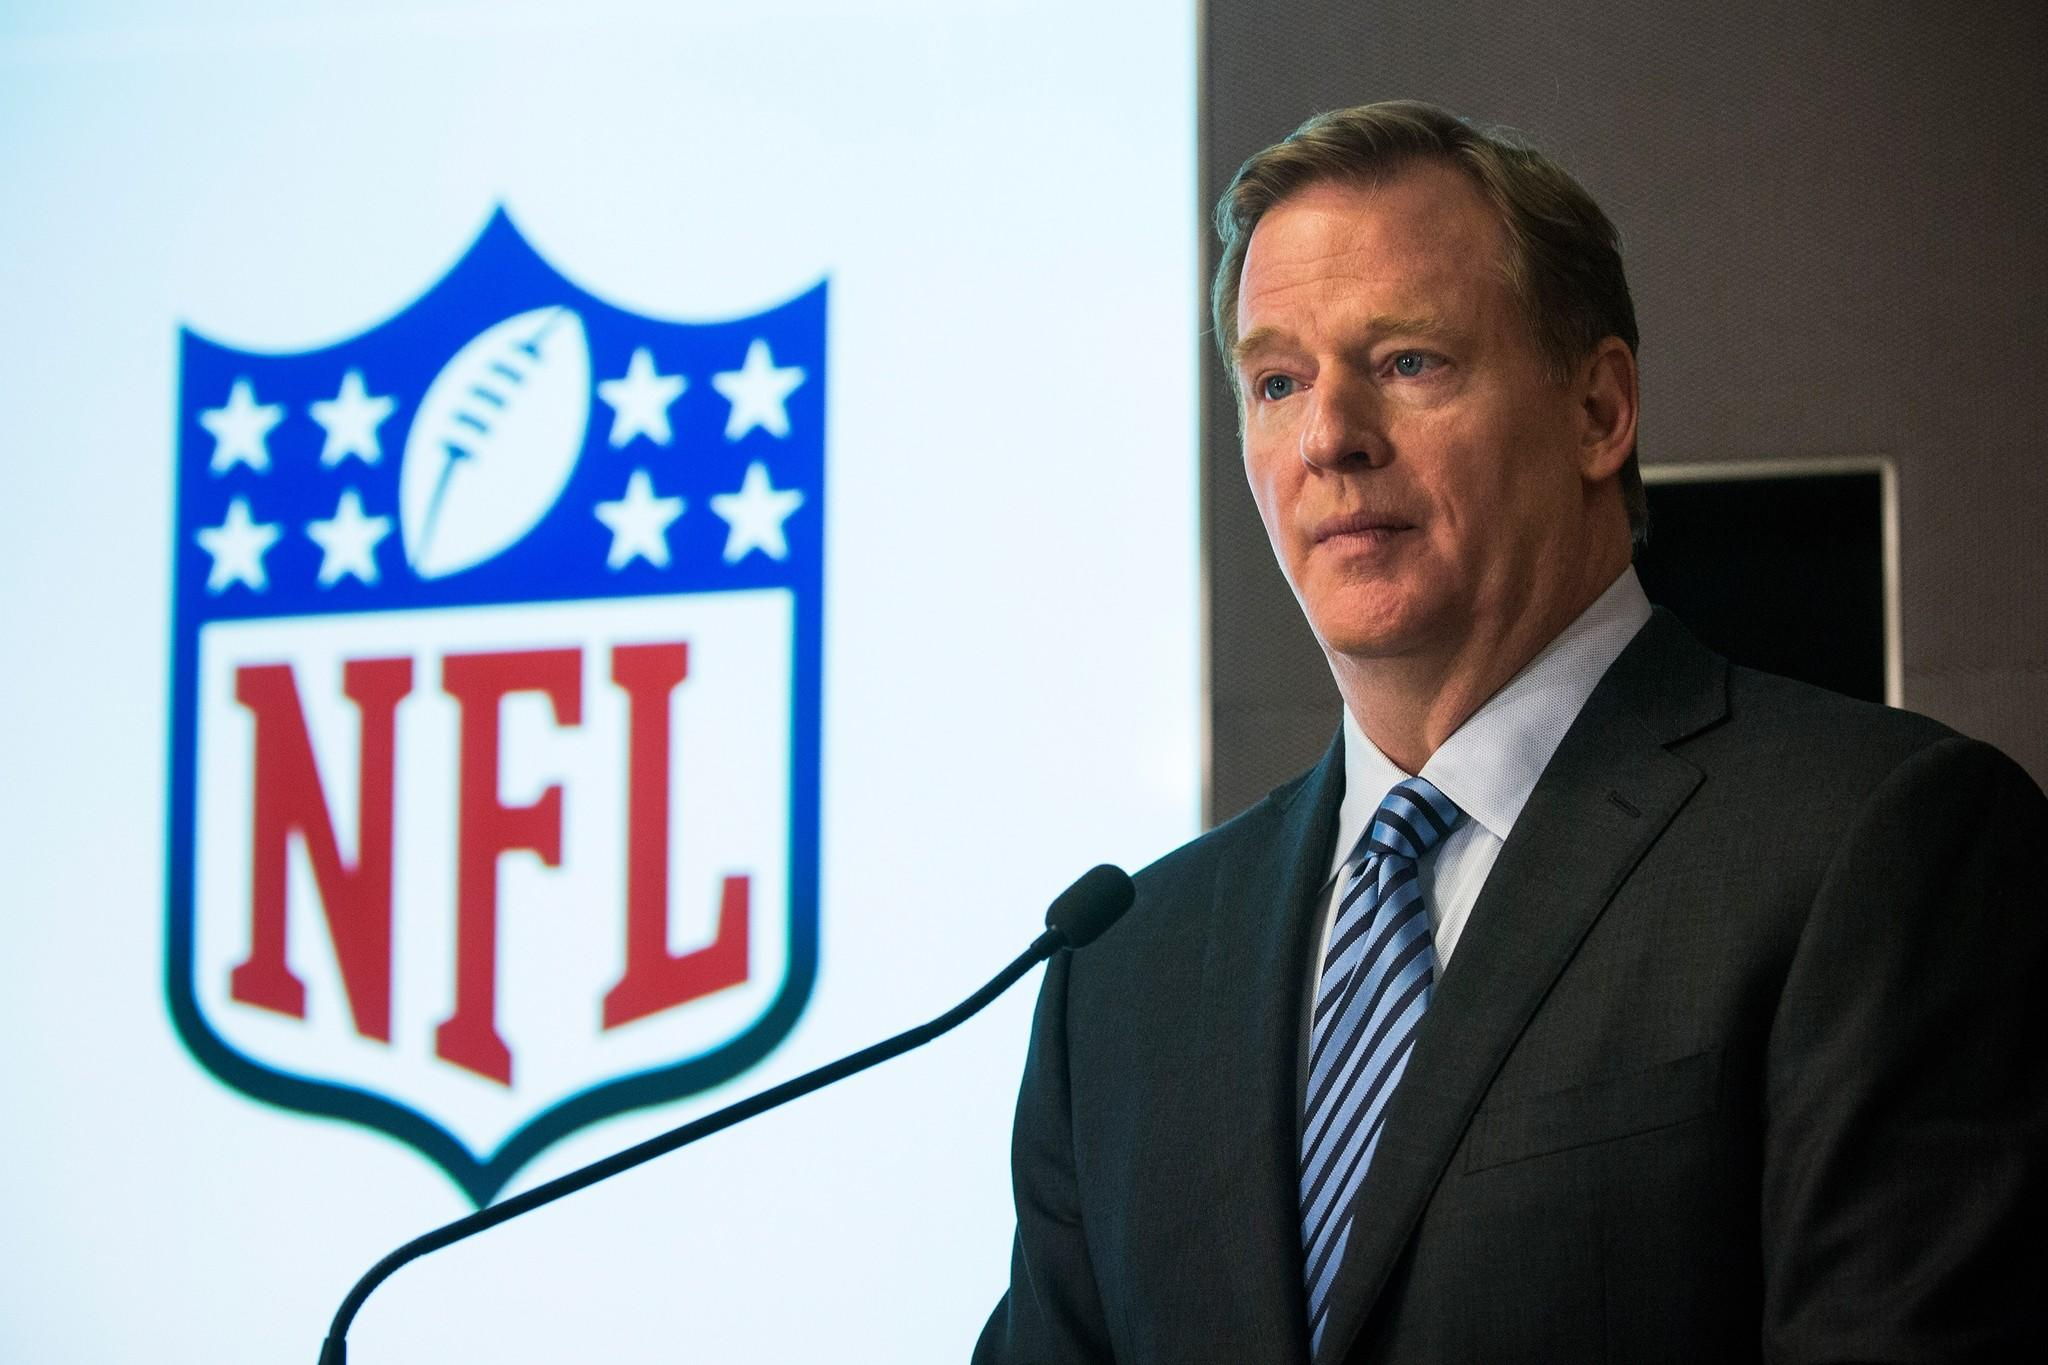 Commissioner Roger Goodell says the NFL would consider the use of medicinal marijuana to treat injured players.